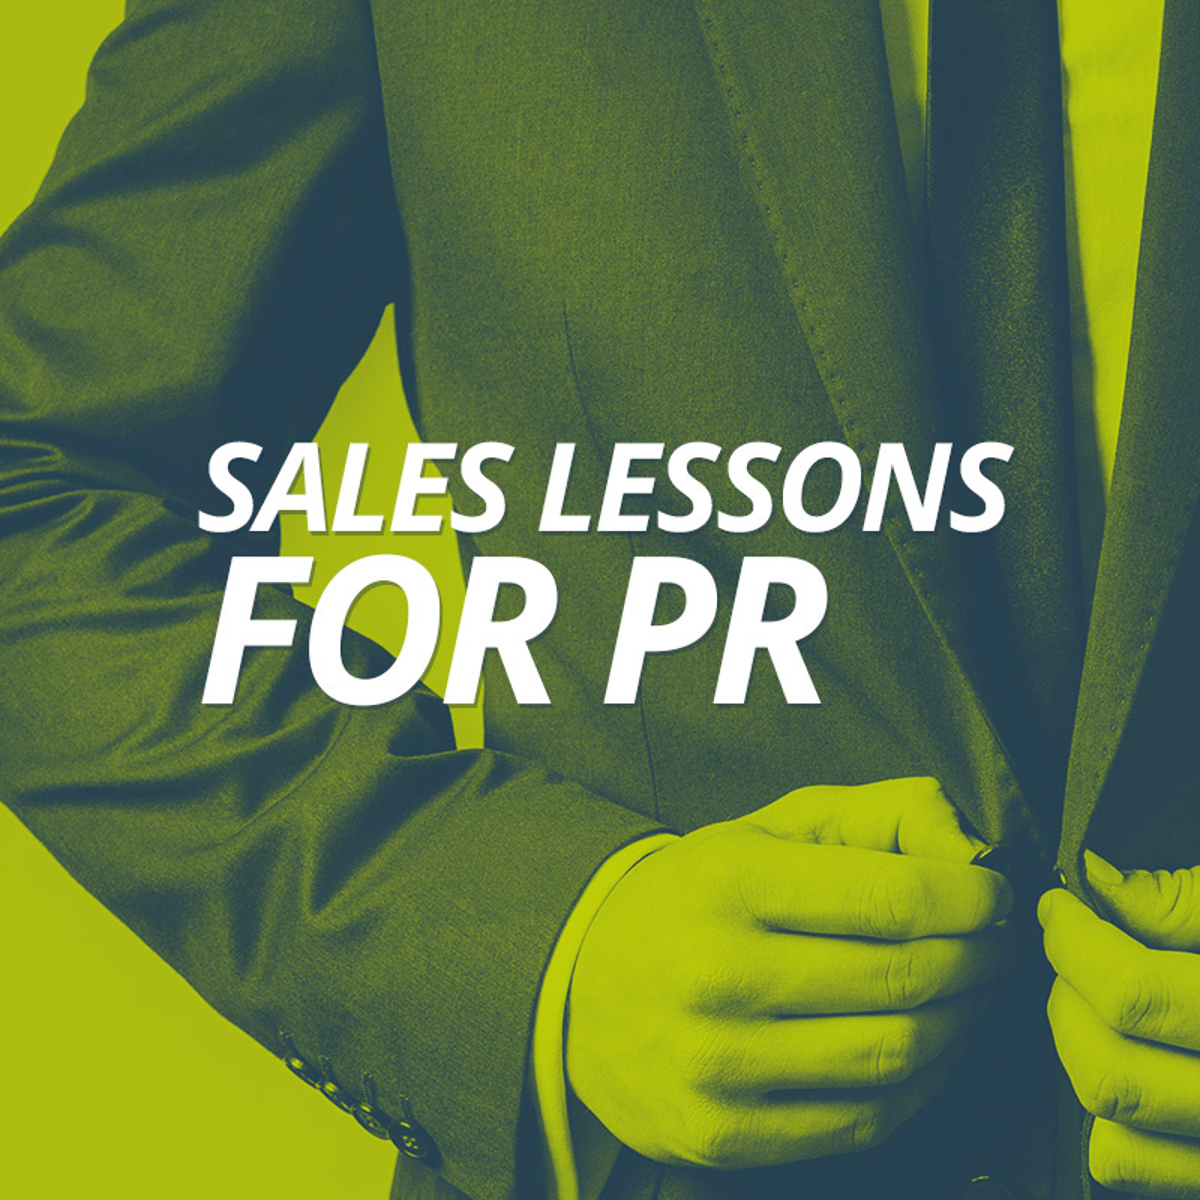 Five PR CRM lessons from highly effective sales teams